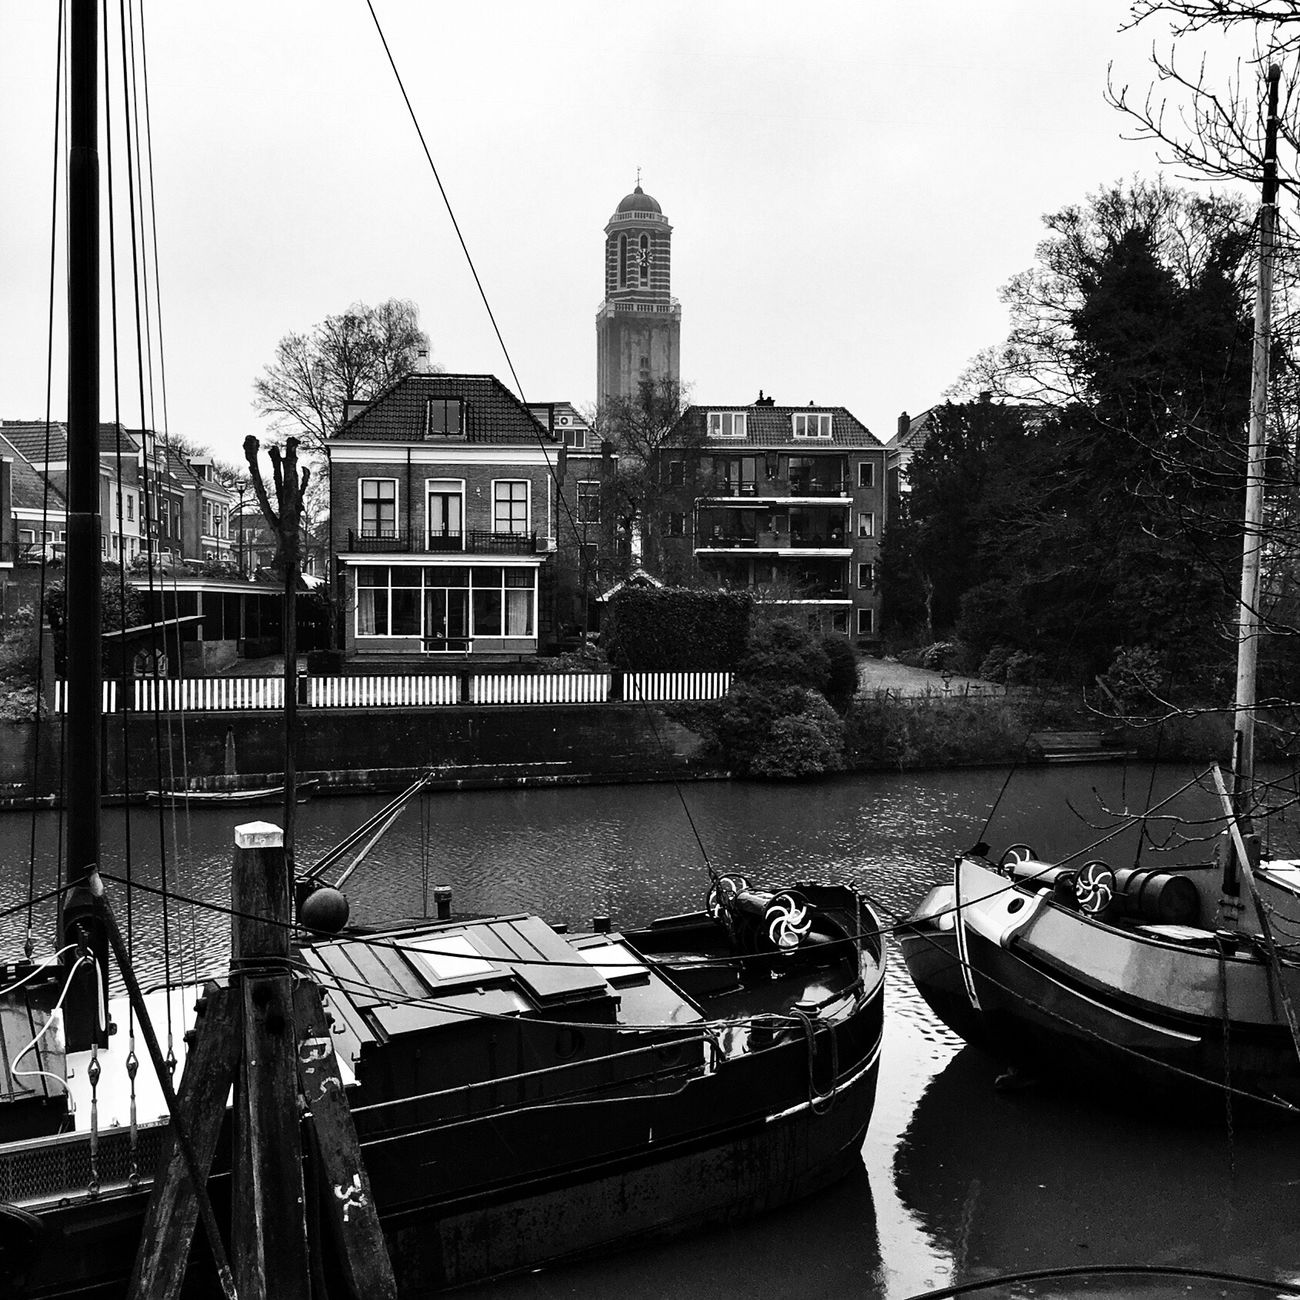 Blackandwhite Monochrome City Building Exterior Nautical Vessel Built Structure Transportation Architecture Mode Of Transport Water Moored Boat Tree City Day Outdoors Sky Waterfront River No People